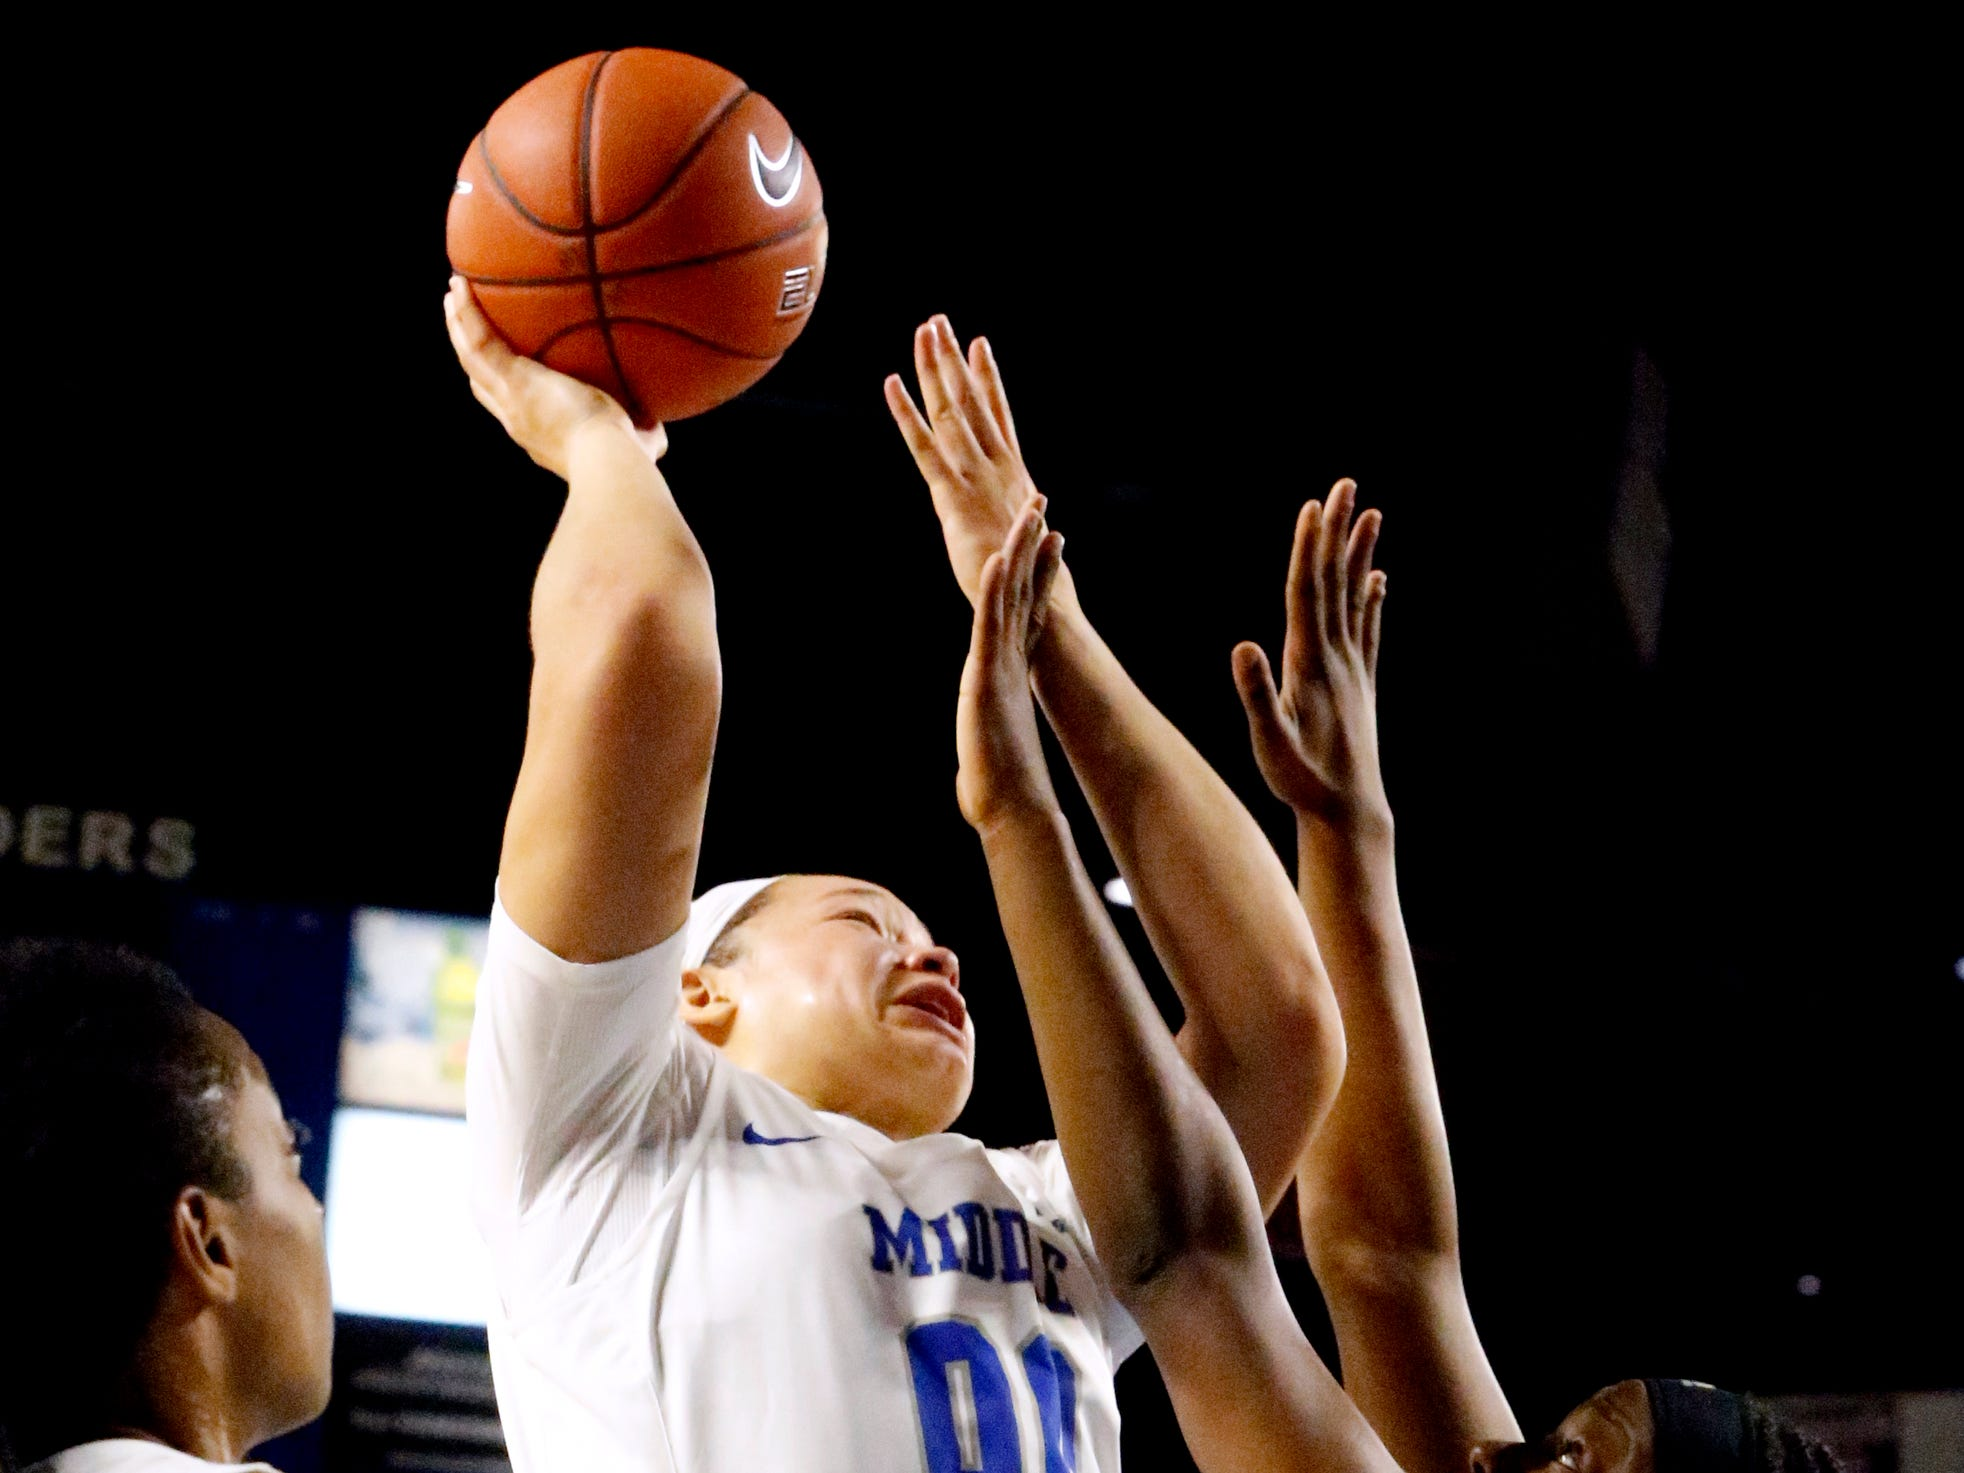 MTSU's forward Alex Johnson (00) shoots the ball as she is guarded by Southern Miss' Kennedy Gavin (24) on Thursday Jan. 10, 2019.